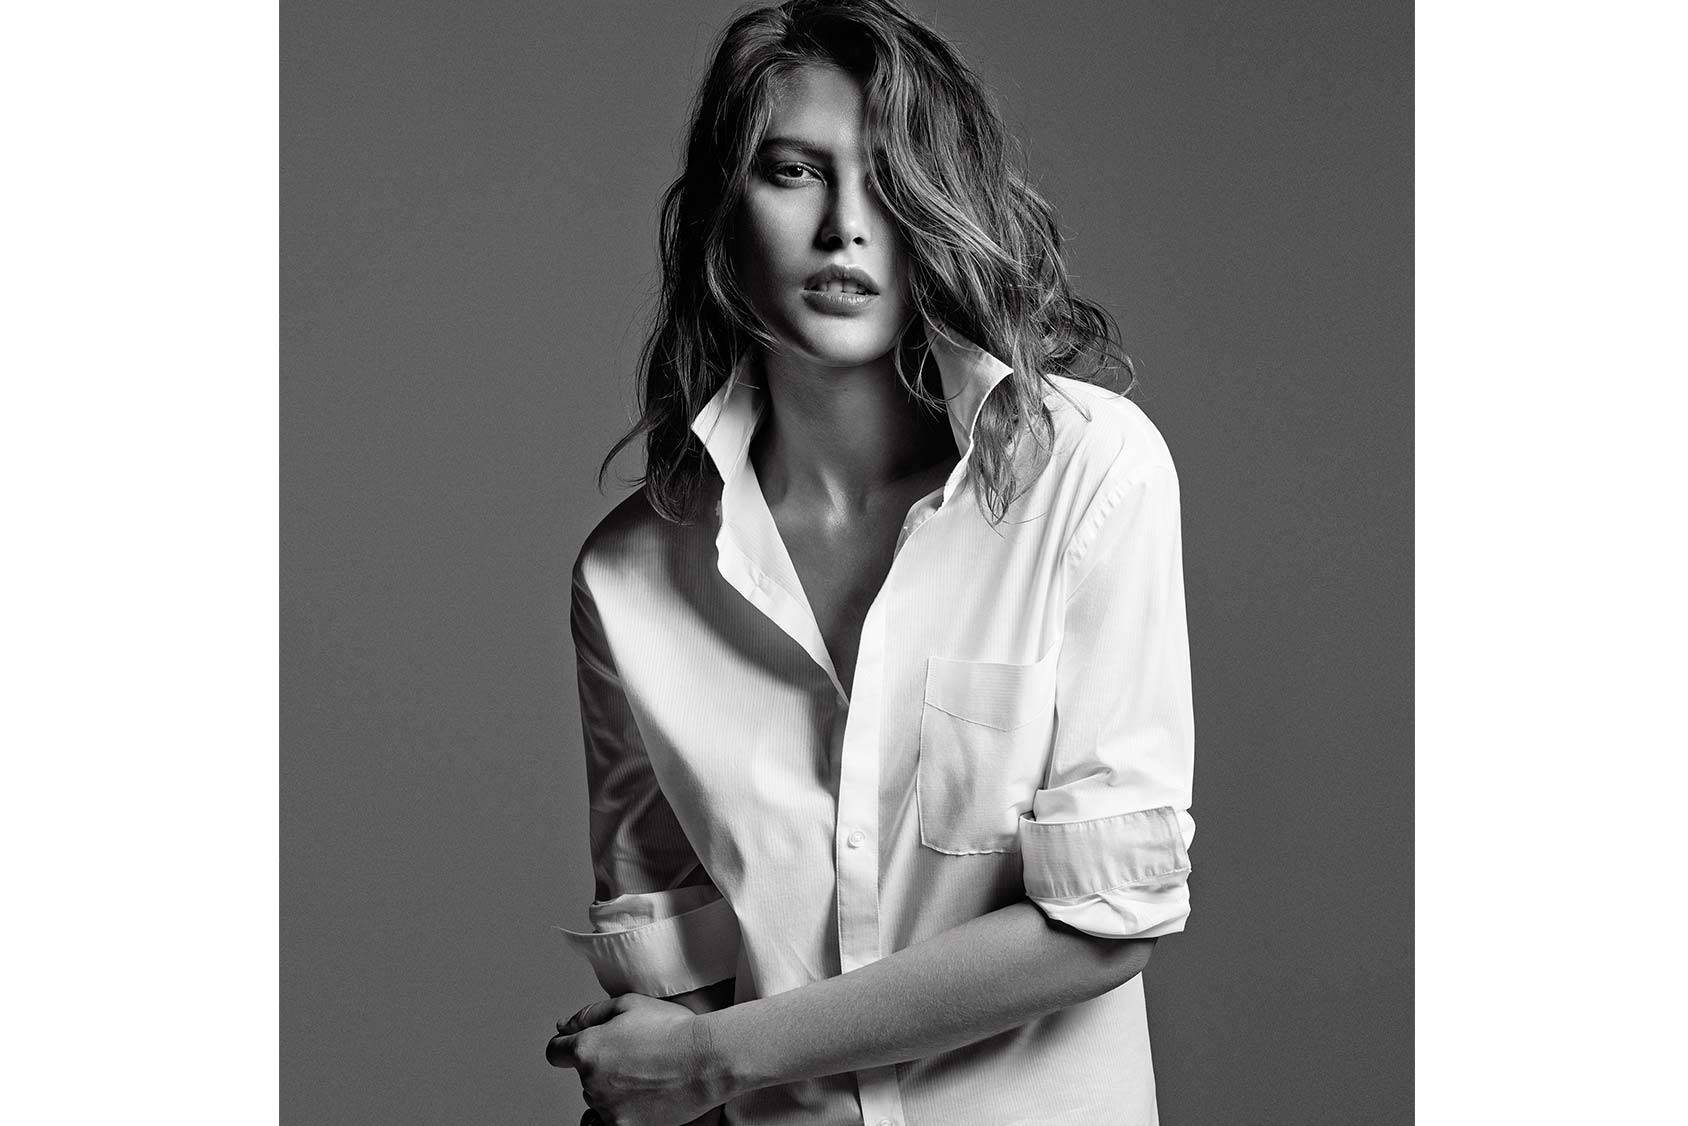 Catherine McNeil photographed by Tobias Lundkvist and styled by Columbine Smille.